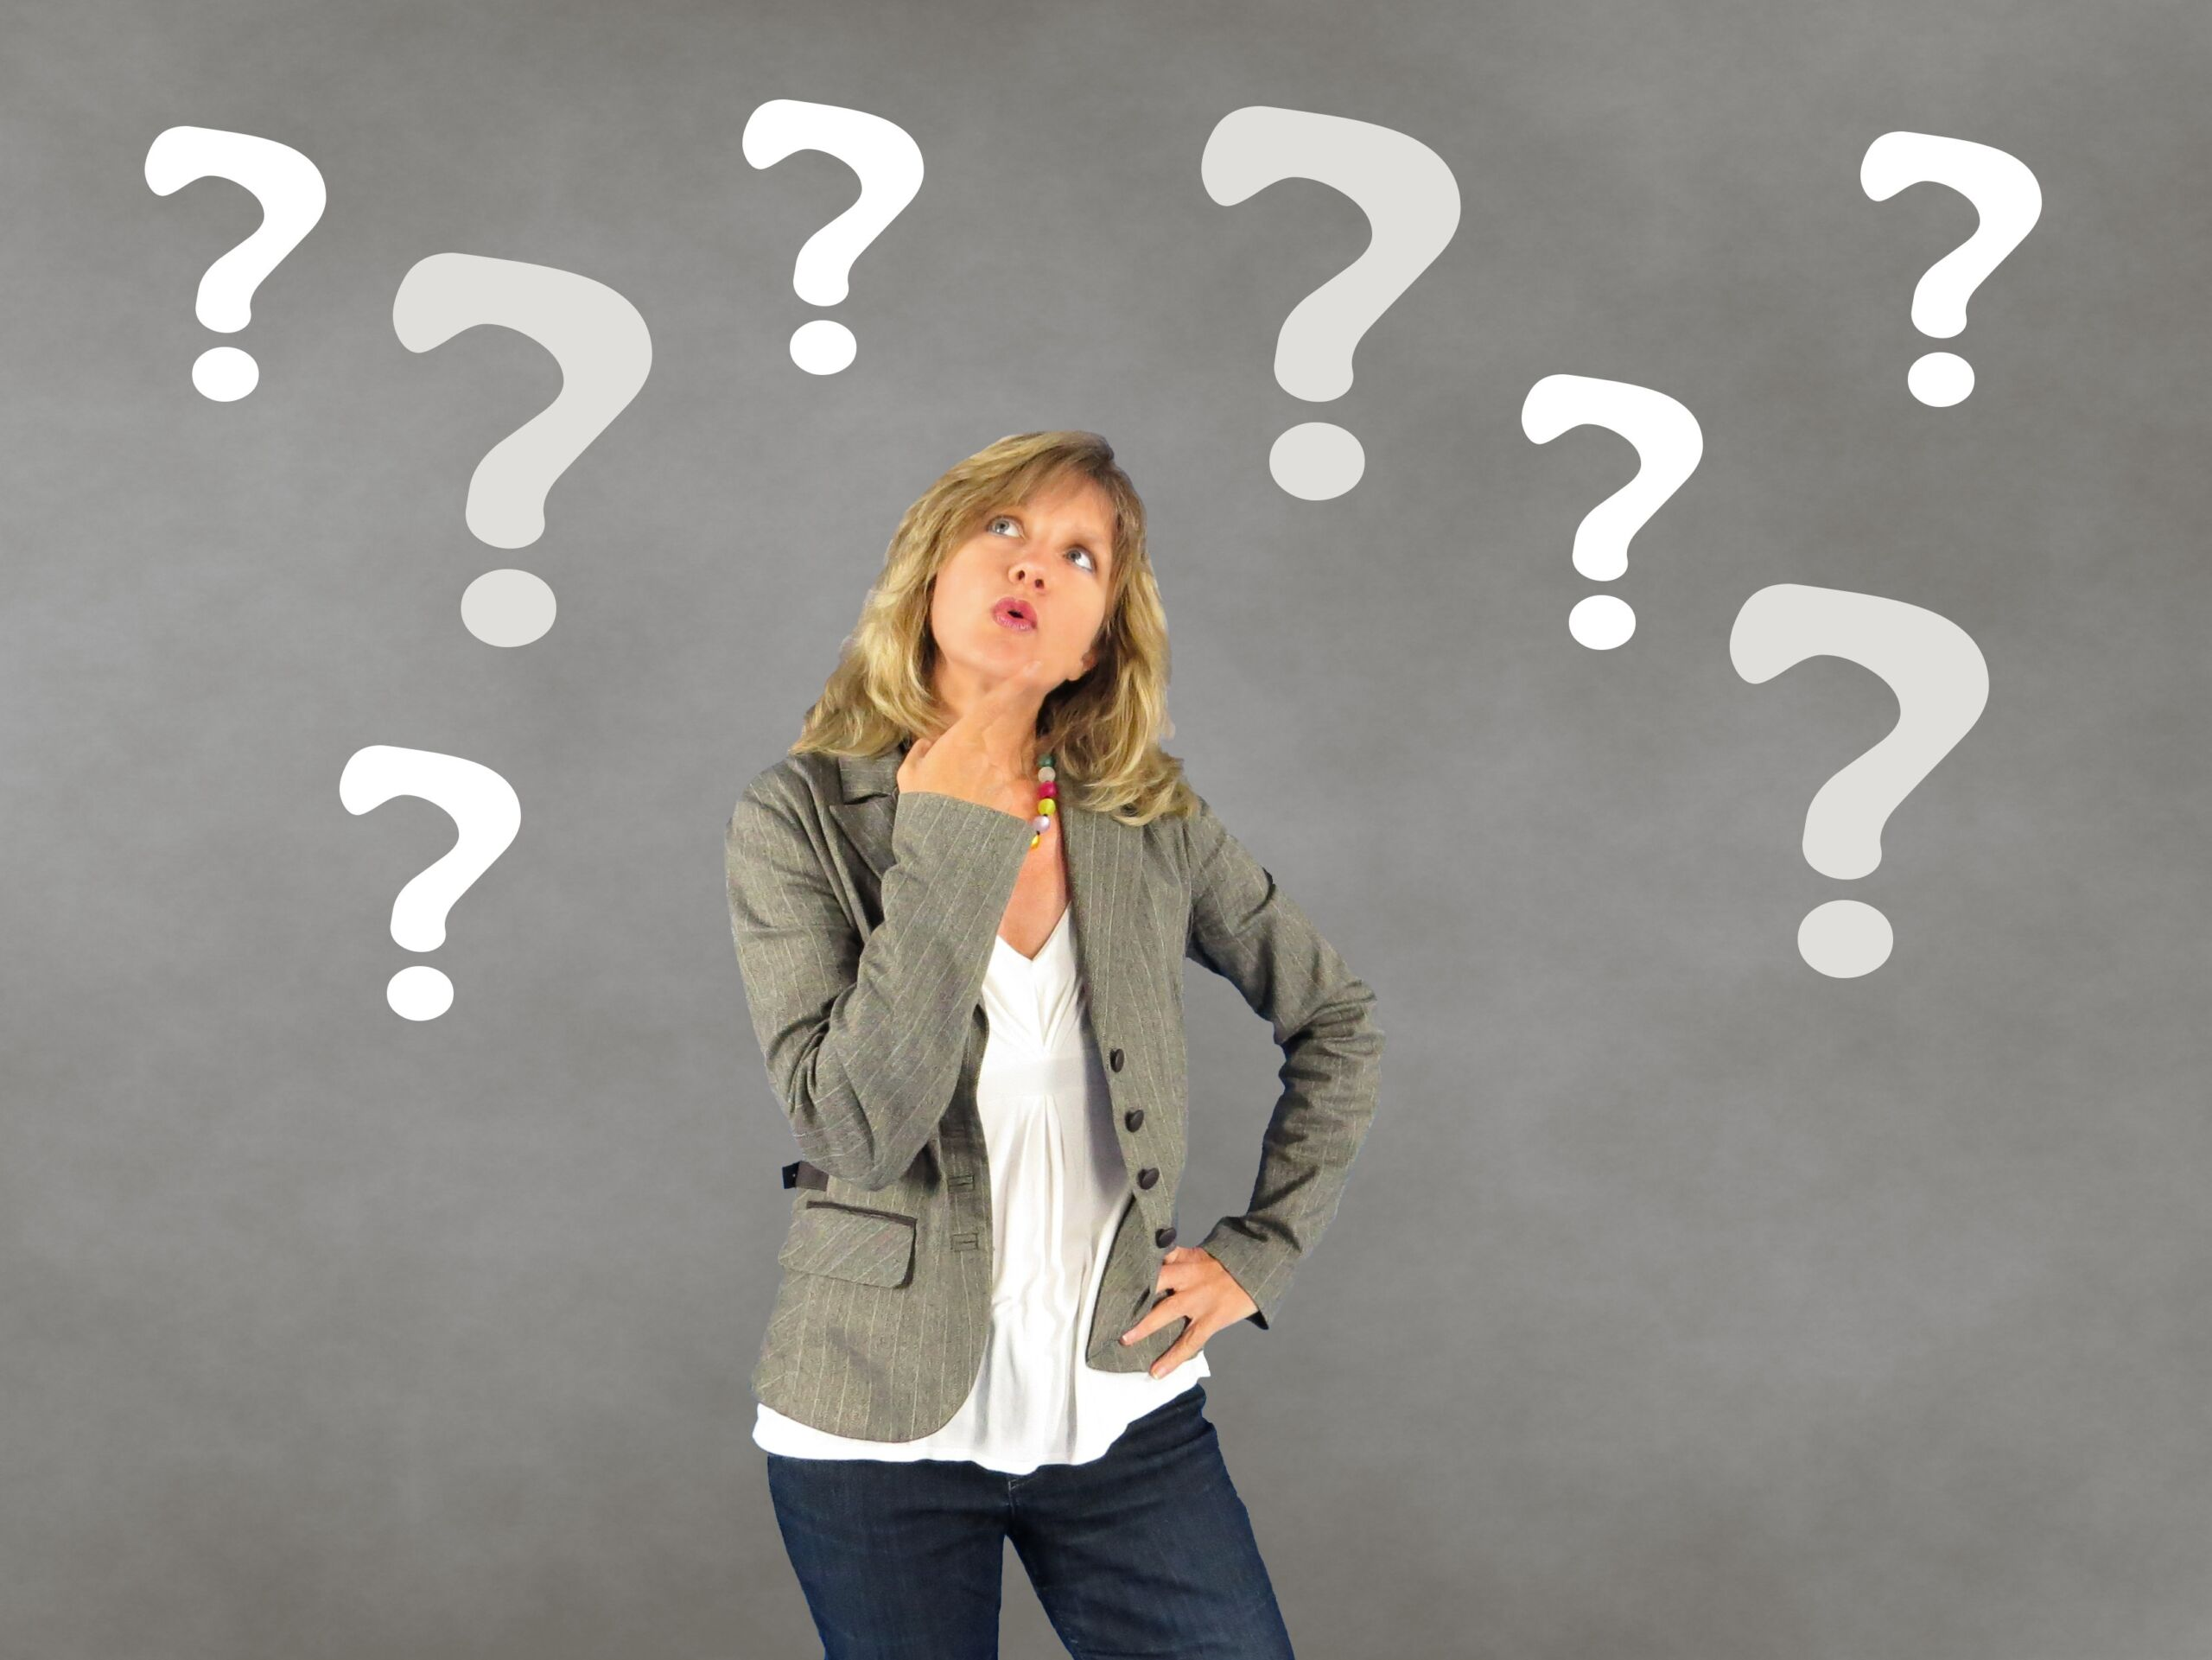 Woman Person Question Mark Thoughtful Decision